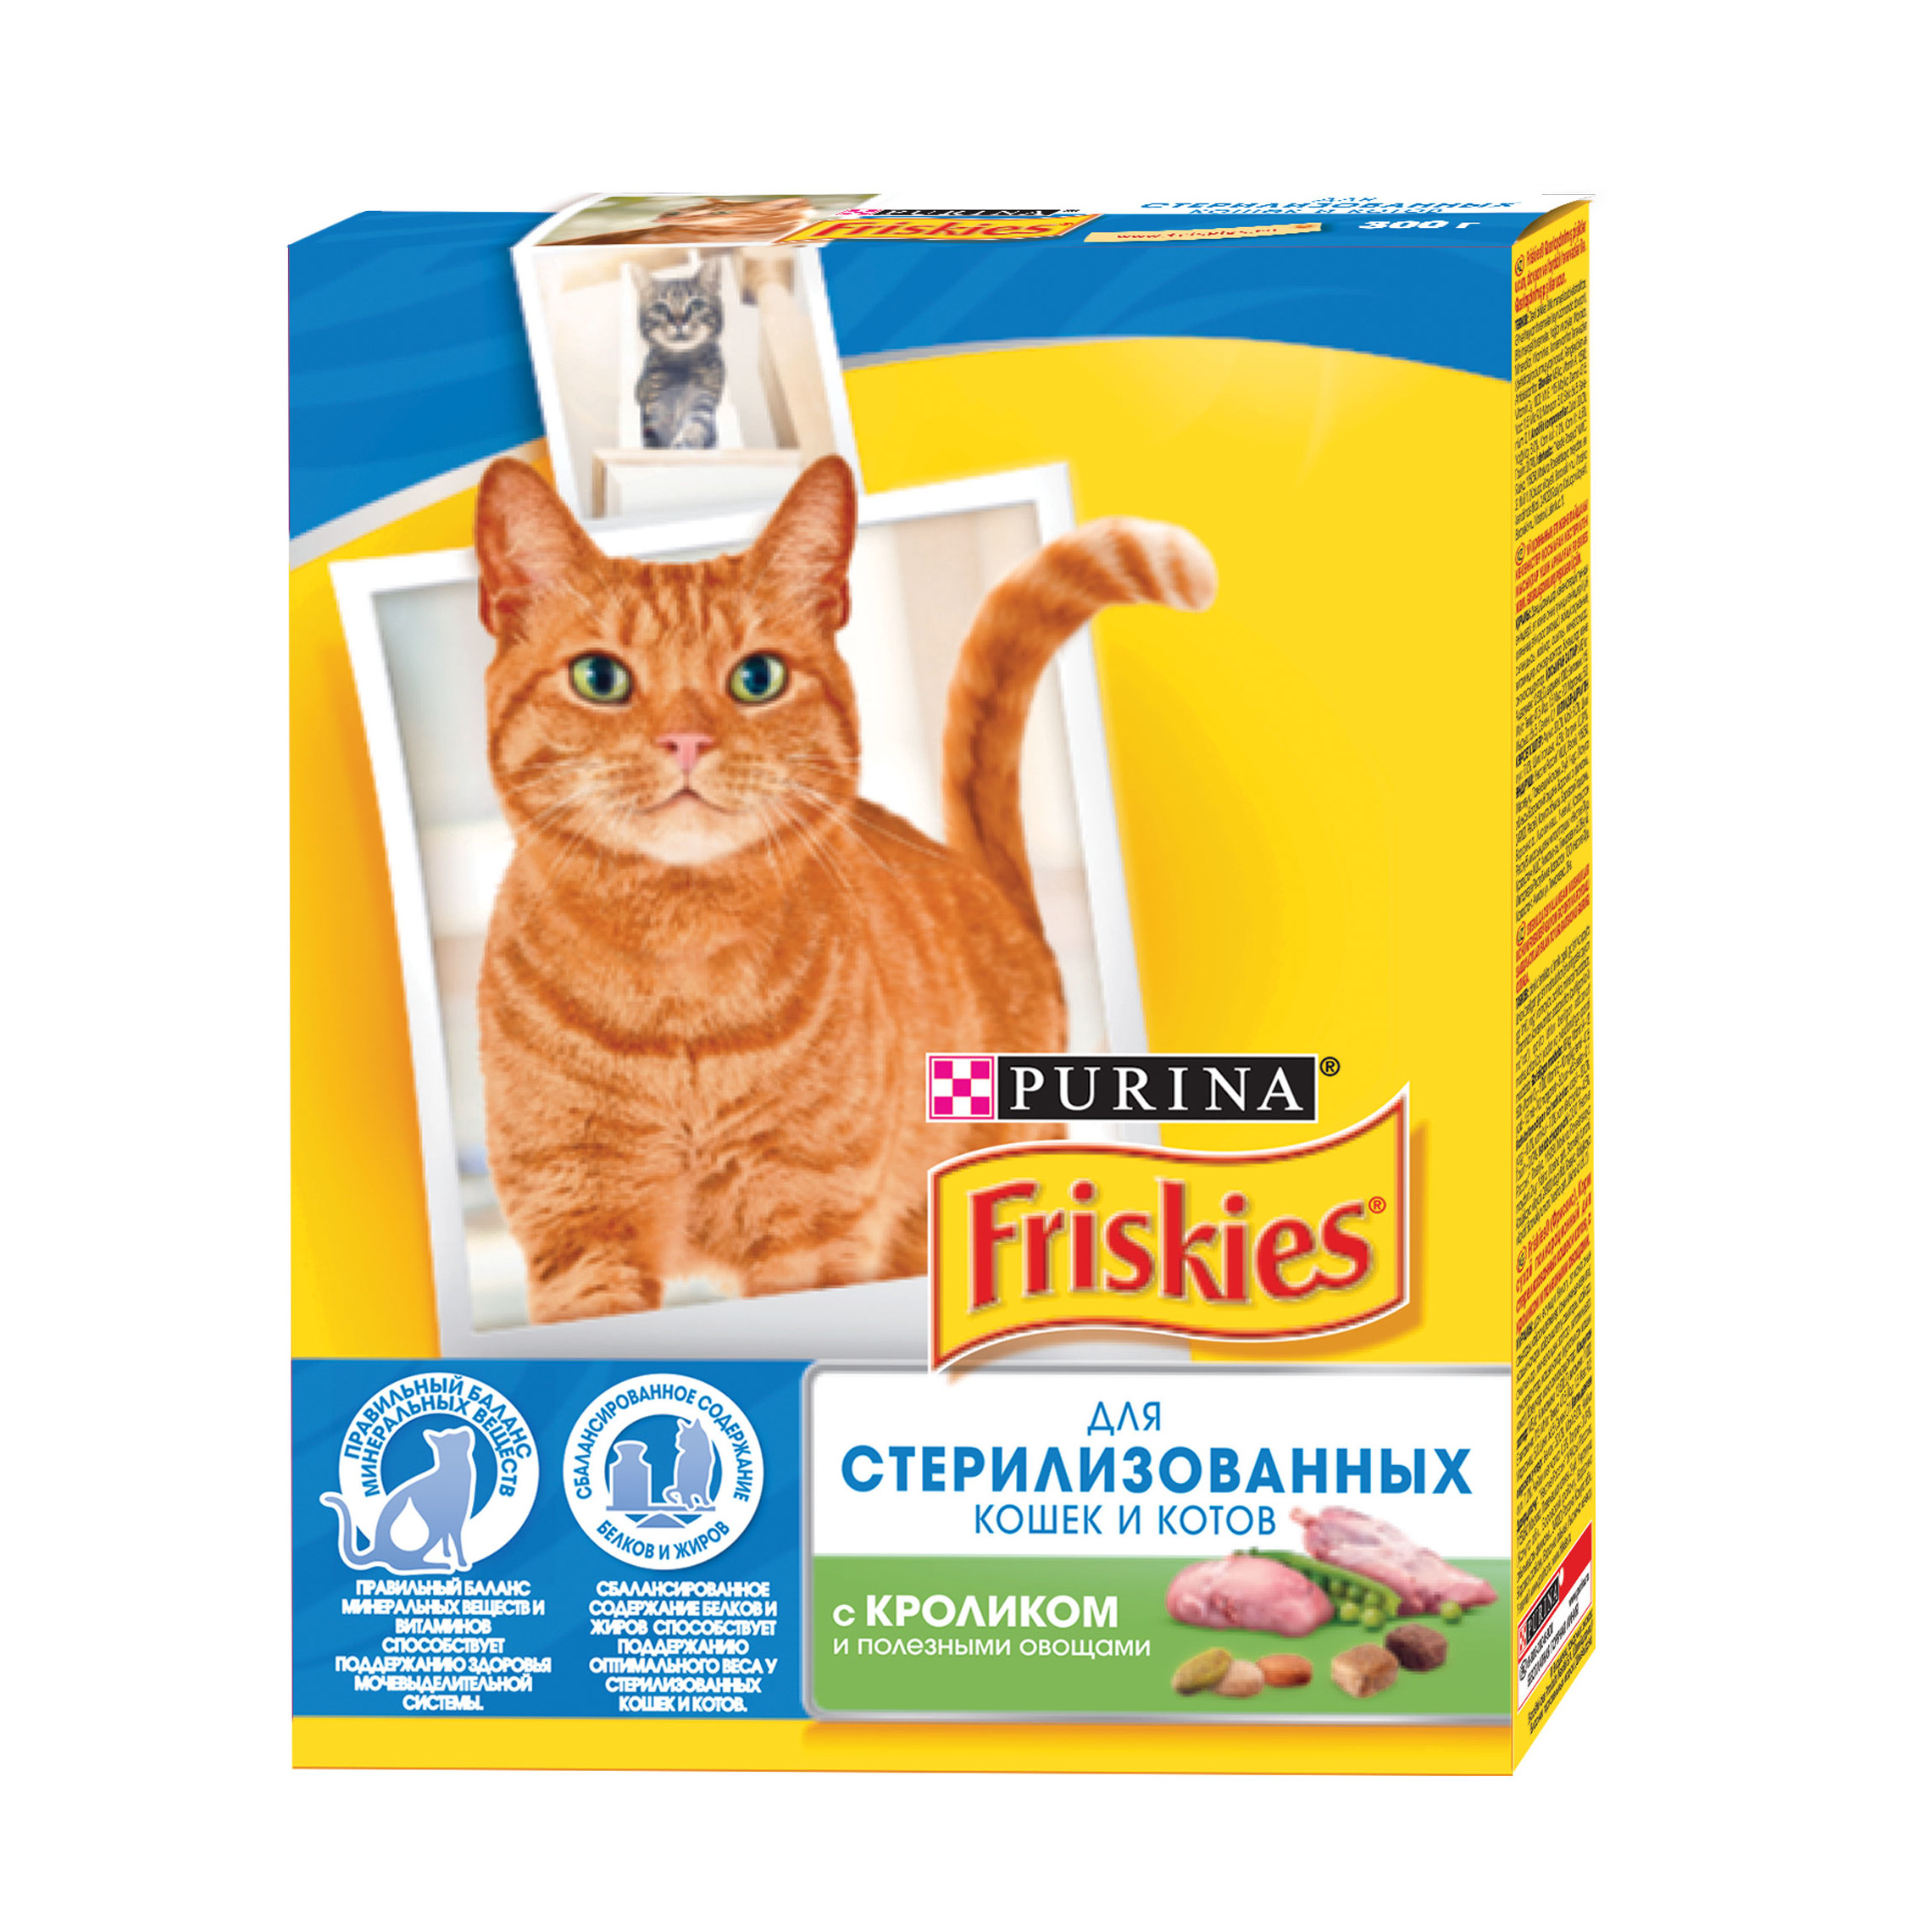 A set of dry food Friskies for sterilized cats and cats with a rabbit and healthy vegetables, Cardboard box, 300 g x 10 pcs.